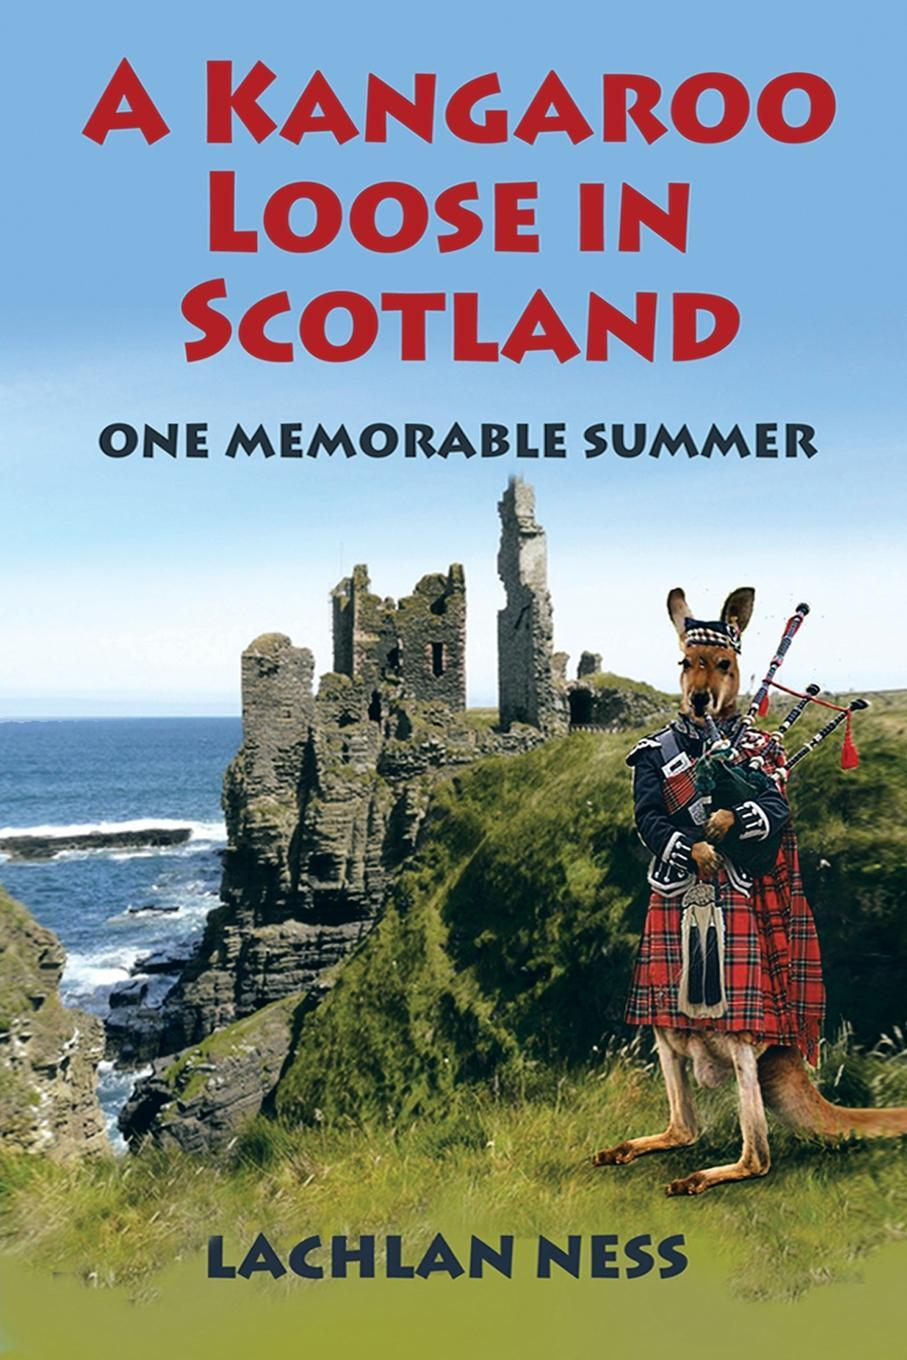 A Kangaroo Loose in Scotland. One Memorable Summer. Lachlan Ness